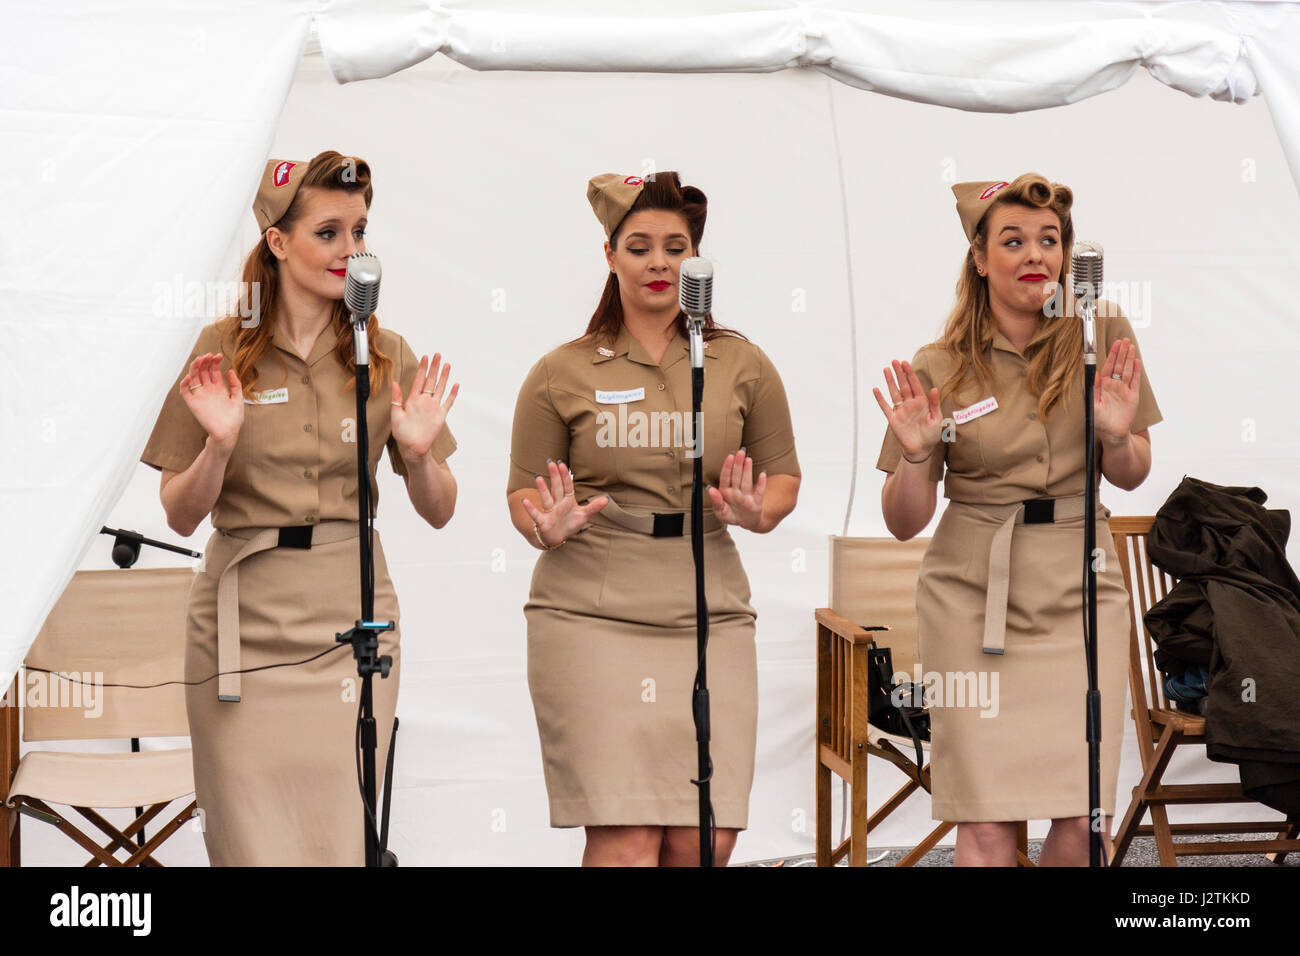 1940s Singers Stock Photos & 1940s Singers Stock Images - Alamy